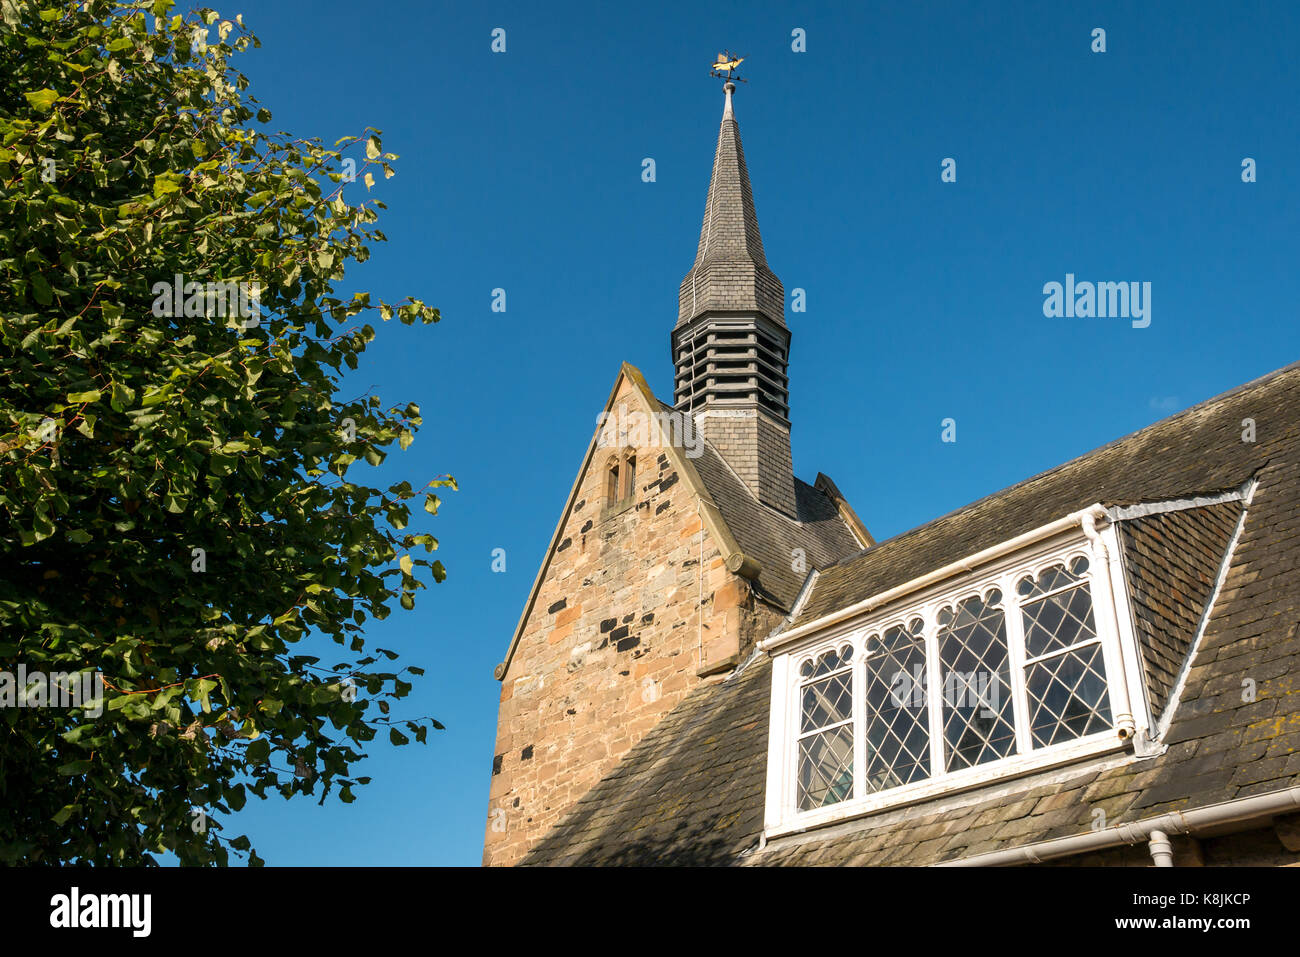 spire-and-country-style-window-presbyter